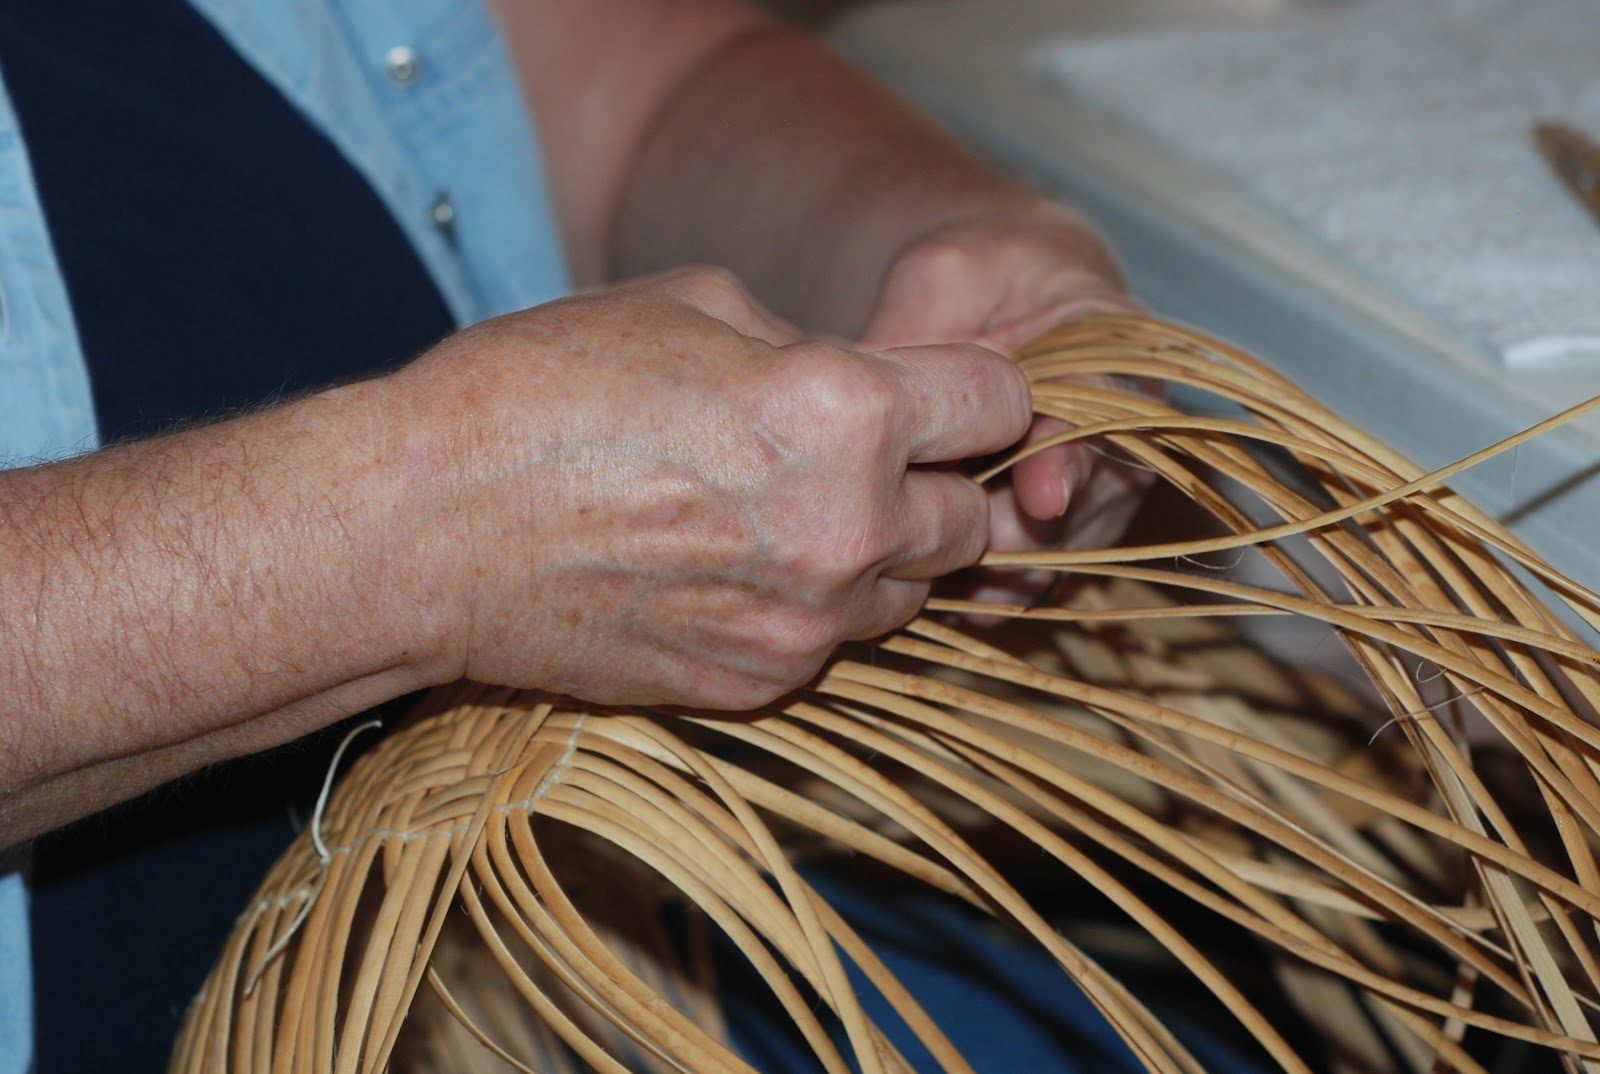 Basket Weaving Name : Prairie places basket weaving class at the creek council